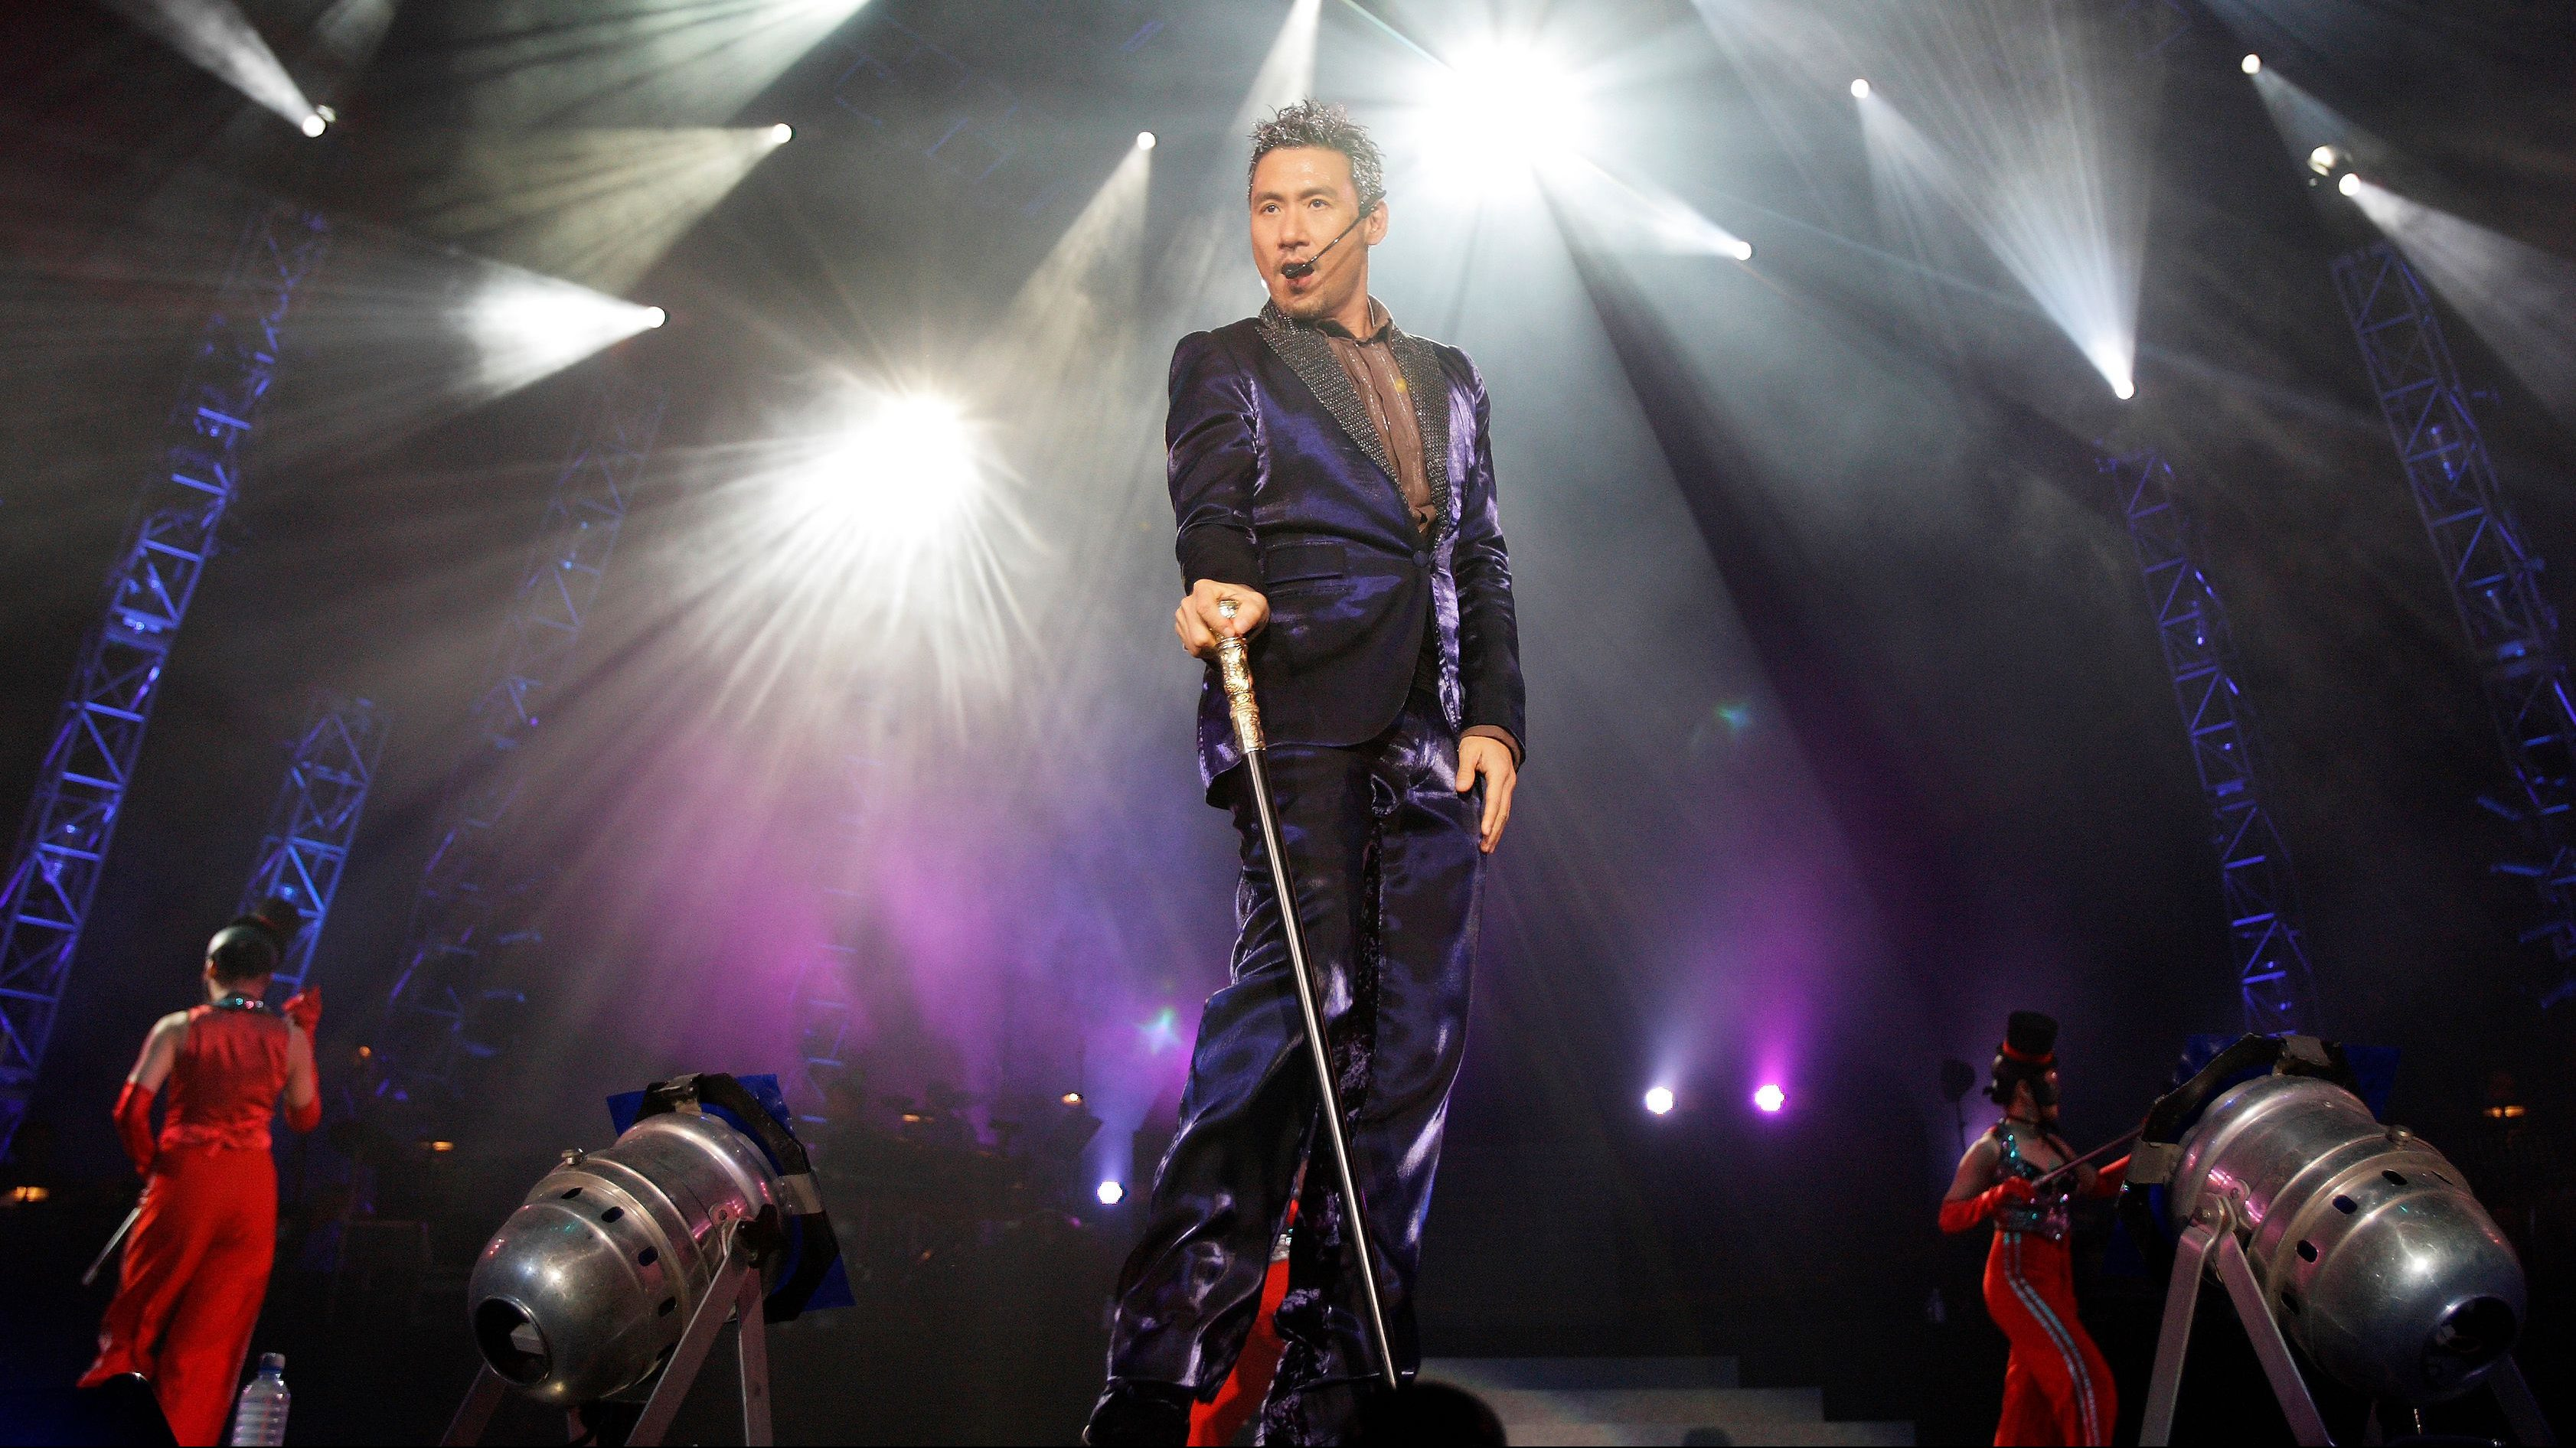 Hong Kong singer Jacky Cheung performs during a concert in Singapore January 5, 2008.